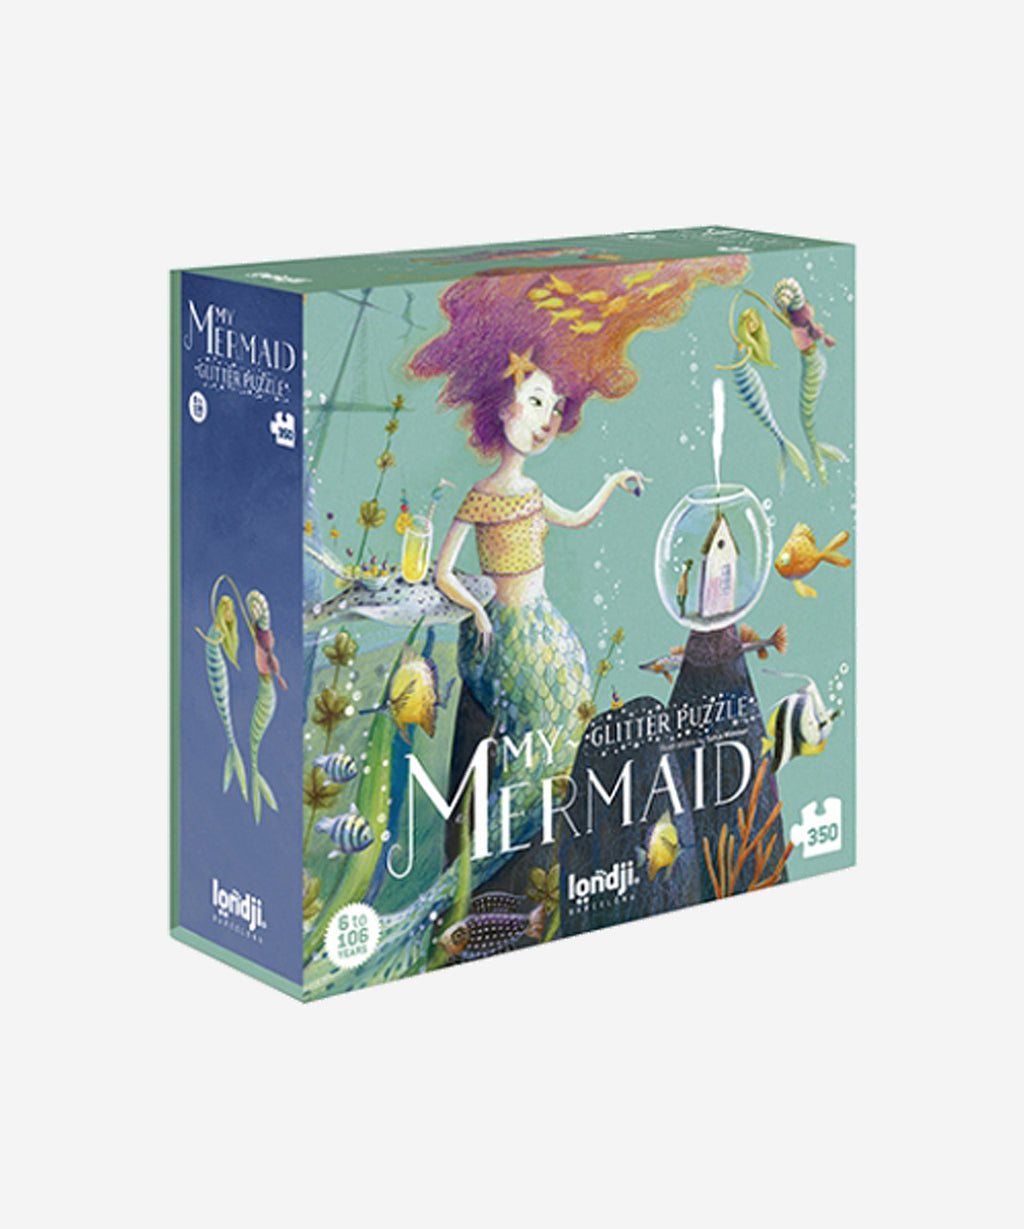 LONDJI - My Mermaid Glitter Puzzle